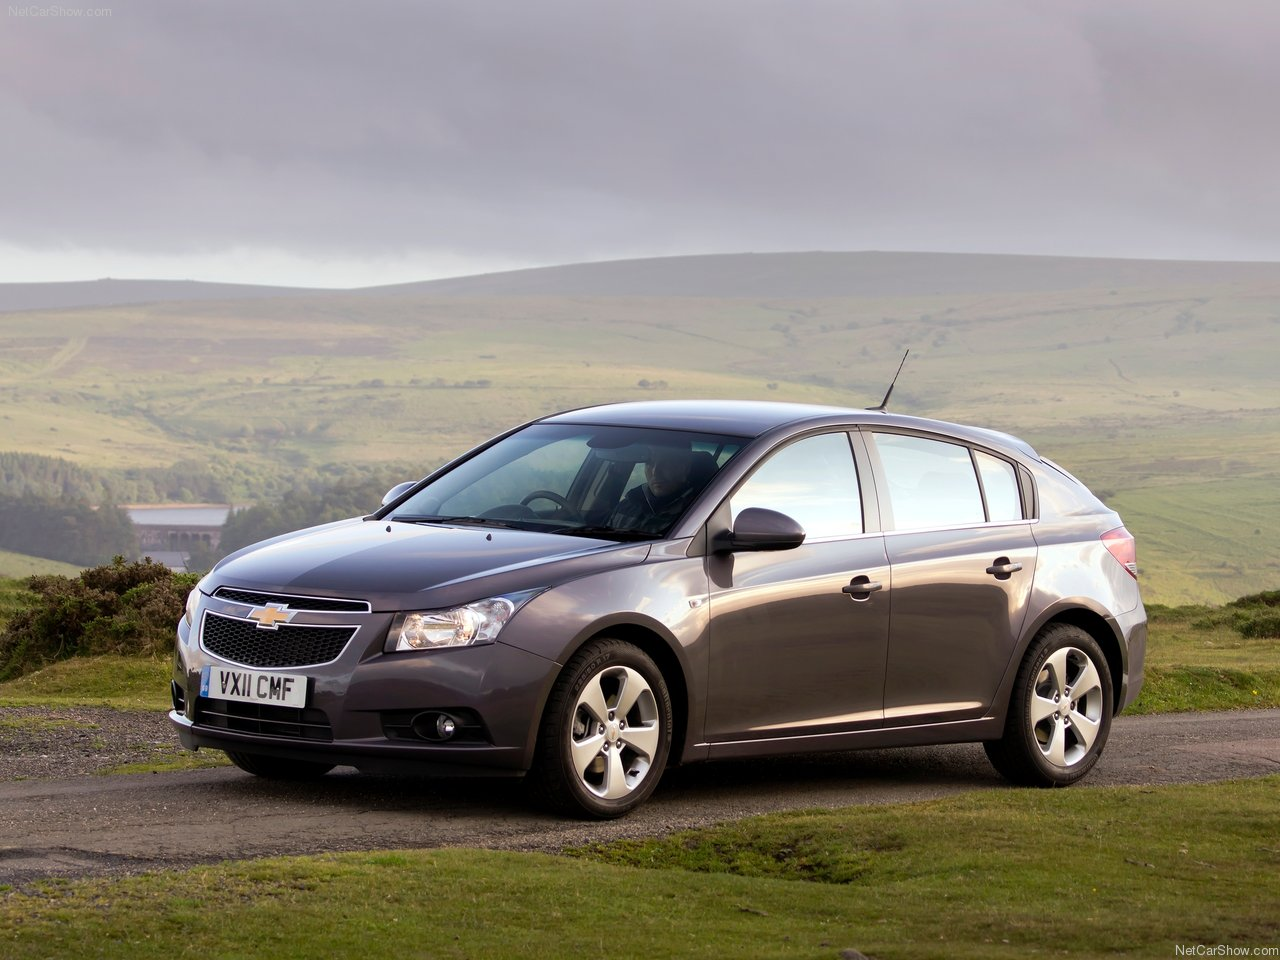 chevrolet cruze technical specifications and fuel economy. Black Bedroom Furniture Sets. Home Design Ideas